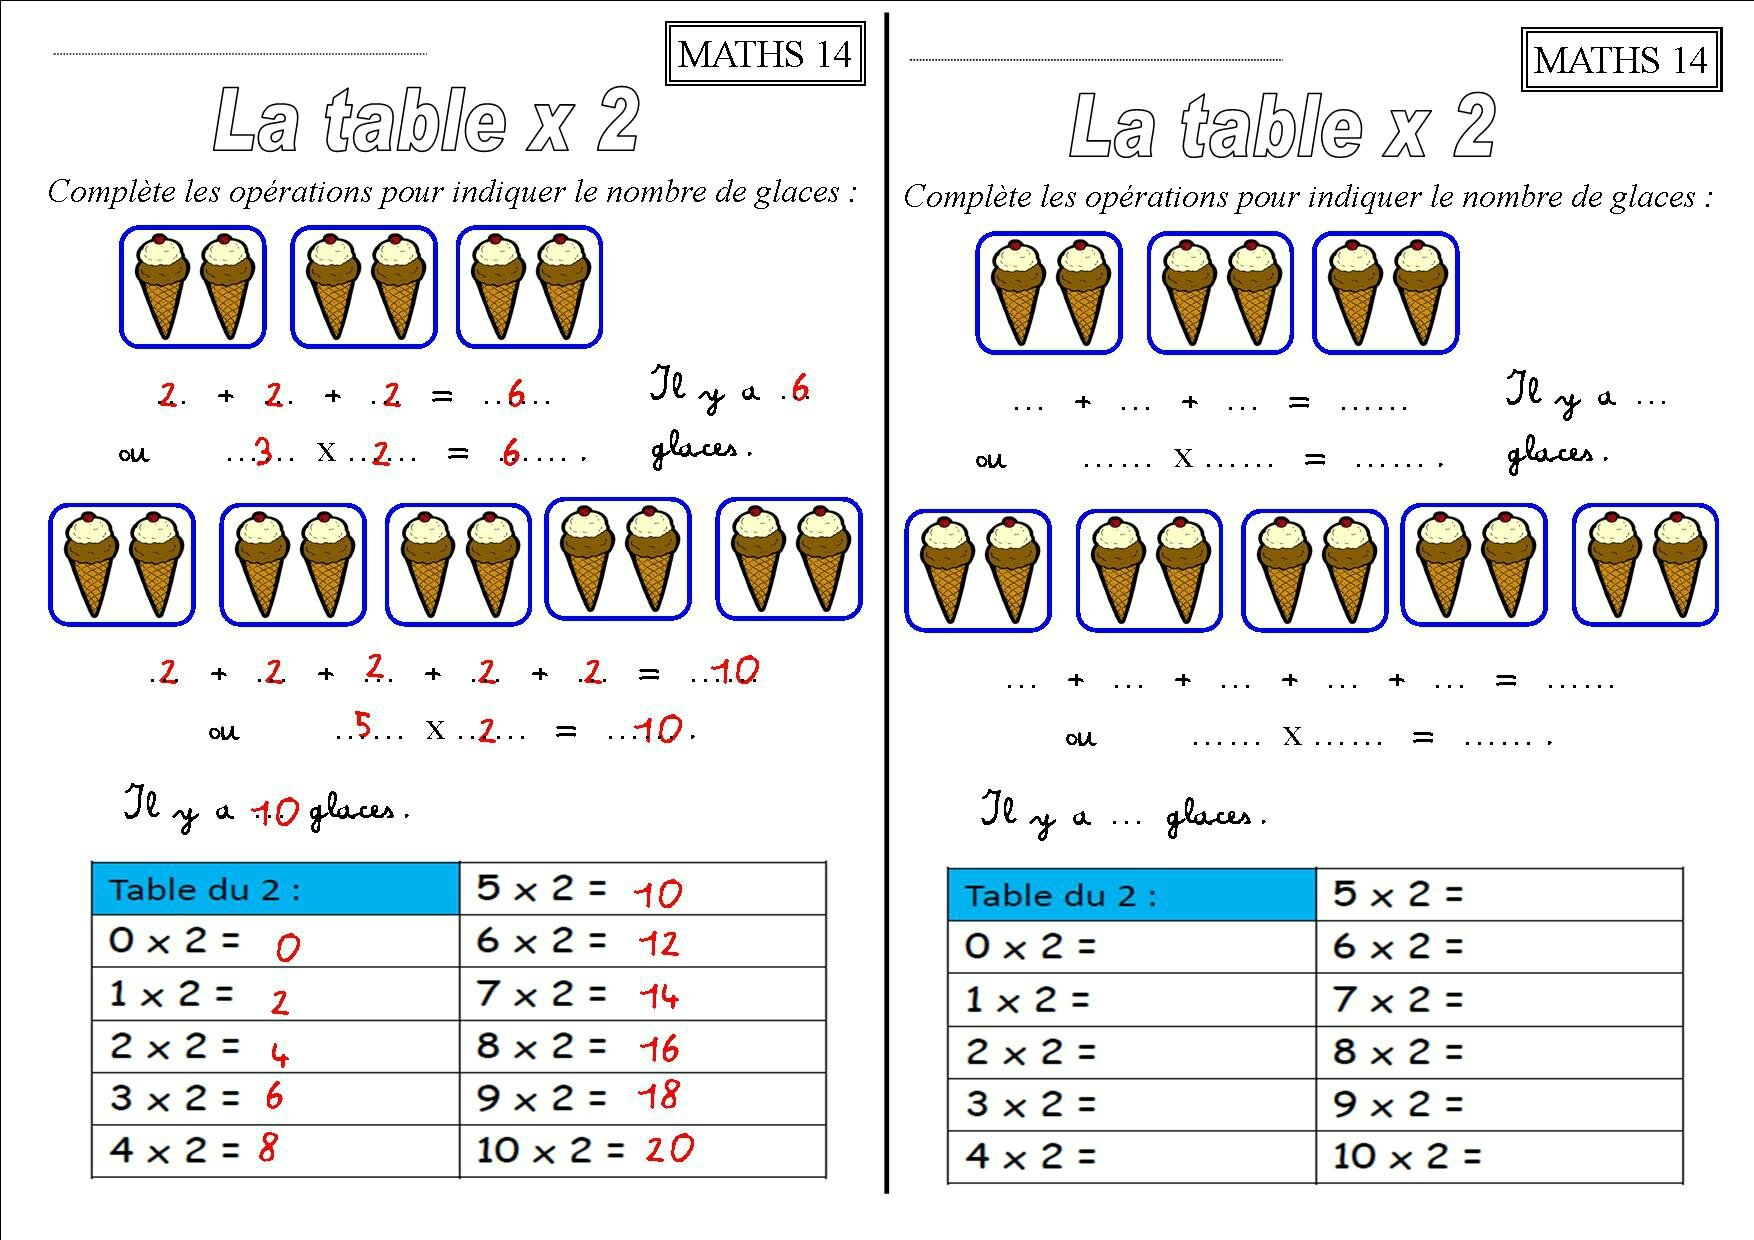 Exercices tables de multiplication 2 3 4 5 les tables de for Table de multiplication de 2 a 5